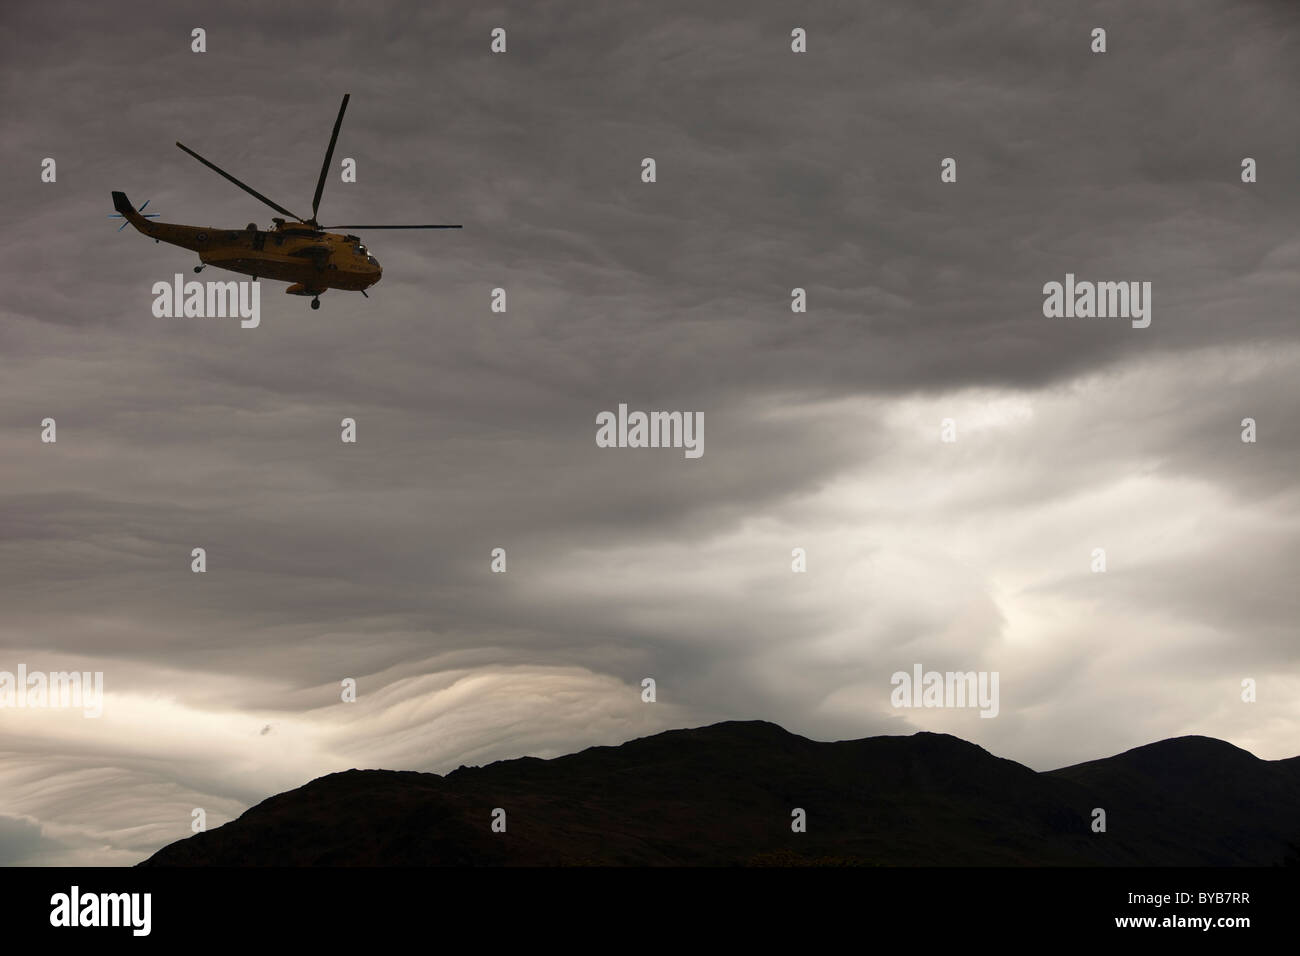 Patterns in cloud on an occluded front over the Lake District hills in Ambleside, Cumbria, UK, with a helicopter. - Stock Image